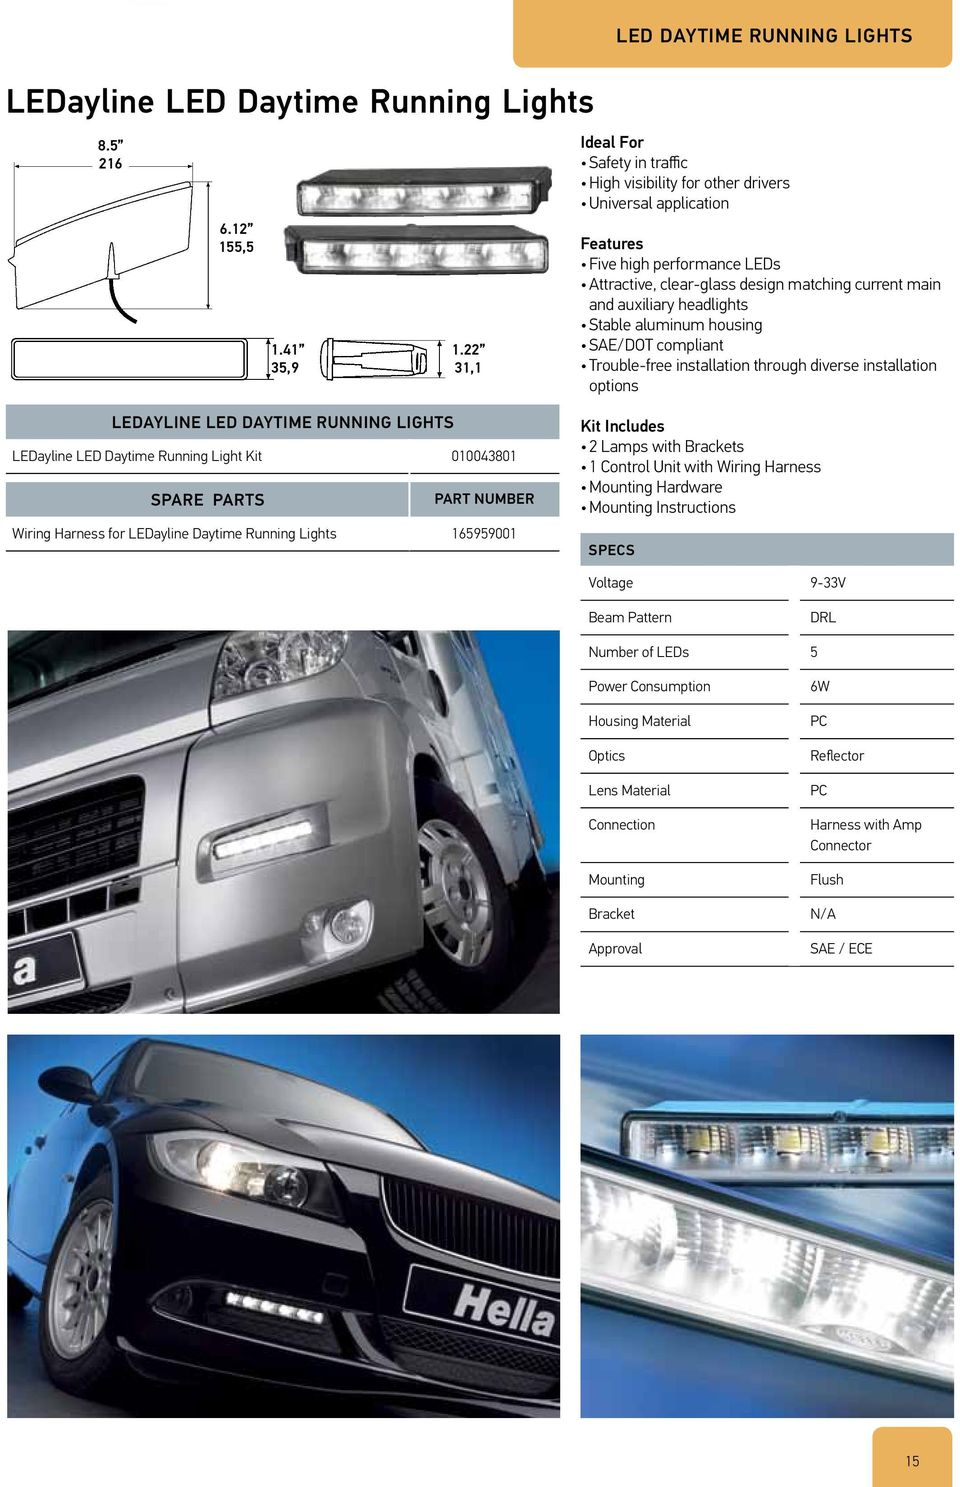 Pdf Daytime Running Lights Wiring Kit Current Main And Auxiliary Headlights Stable Aluminum Housing Sae Dot Compliant Trouble Free Installation